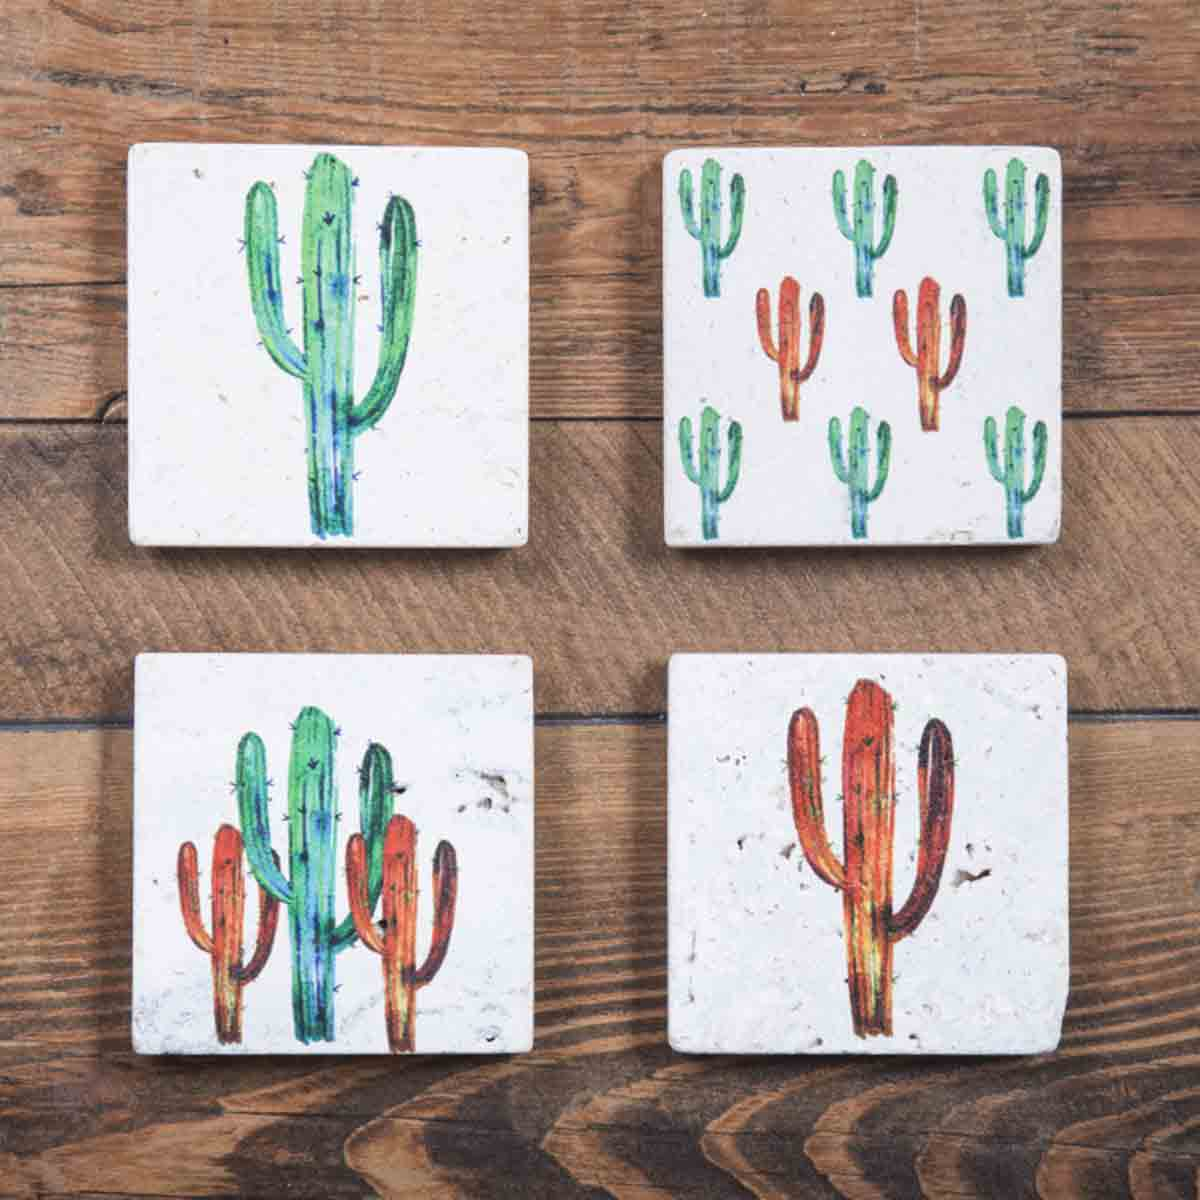 Watercolor Cactus Coasters - Set of 4 - OUT OF STOCK UNTIL 7/5/2021